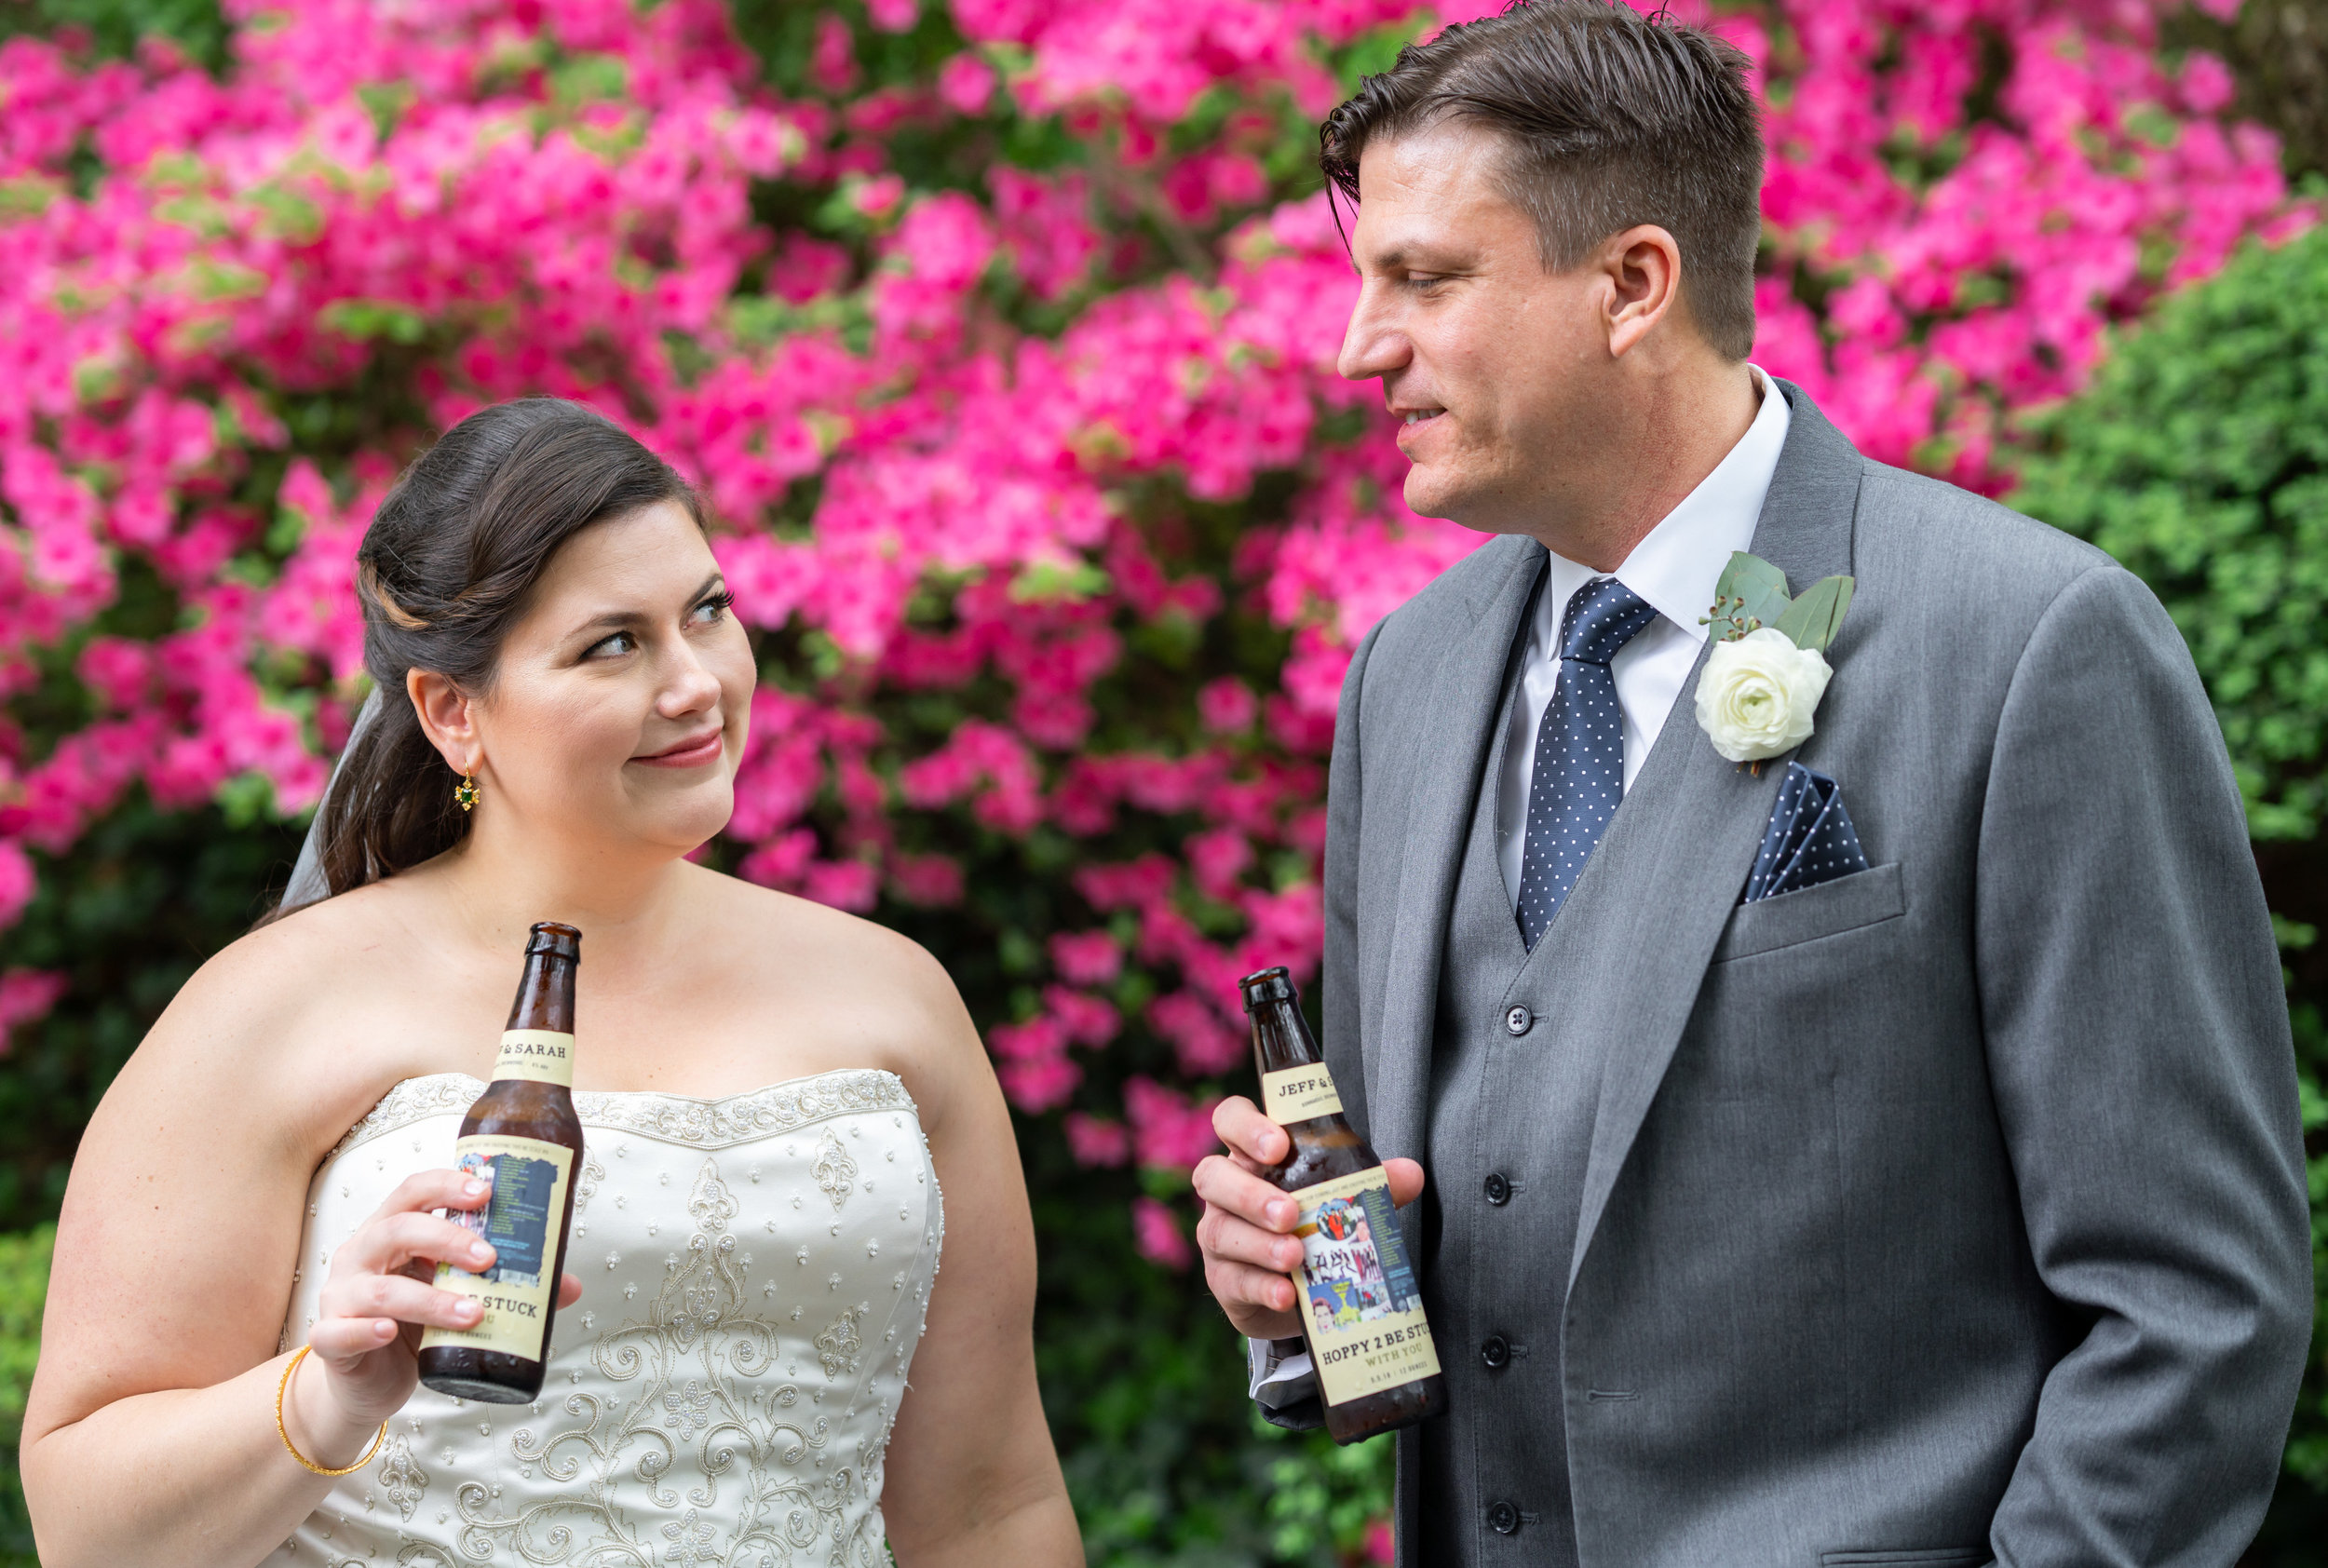 Bride and groom toasting with beer bottles with custom wedding day labels